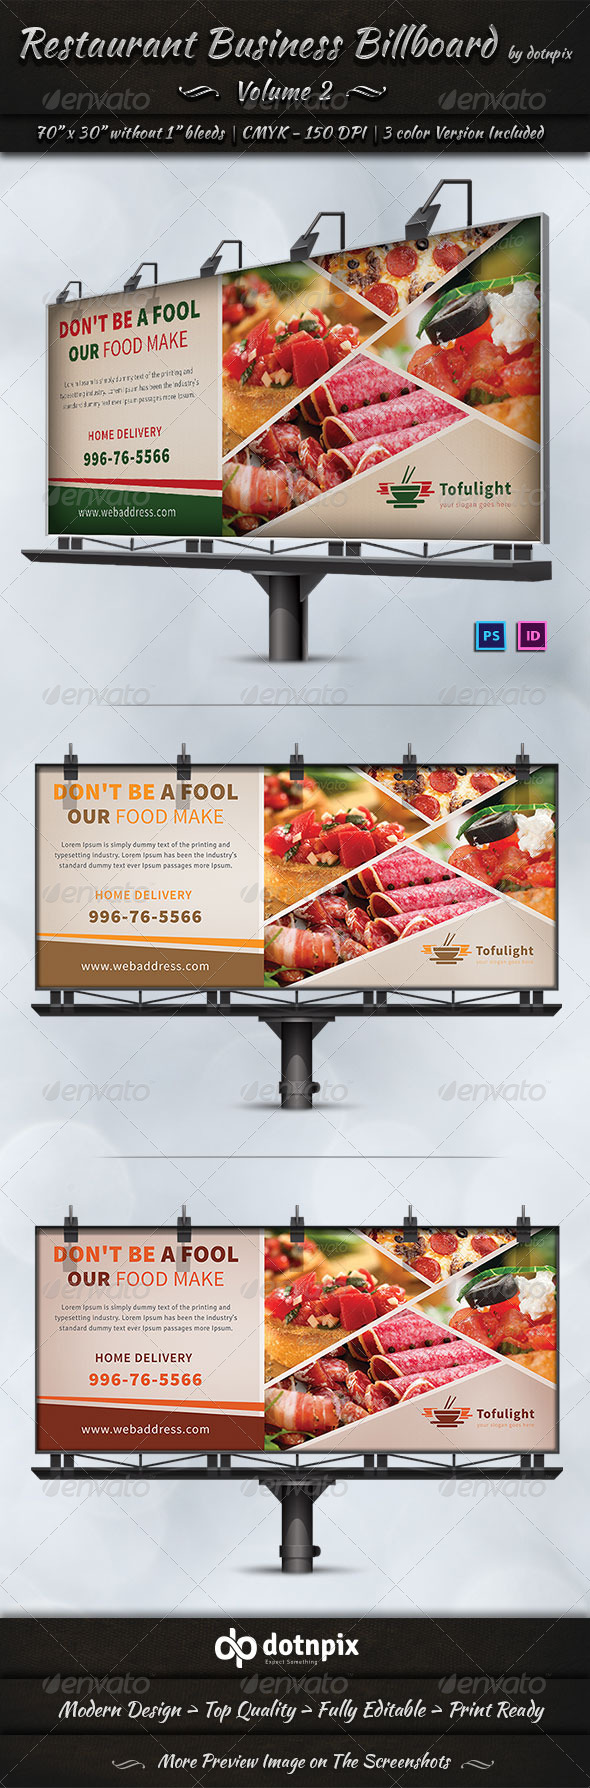 GraphicRiver Restaurant Business Billboard Volume 2 7298713